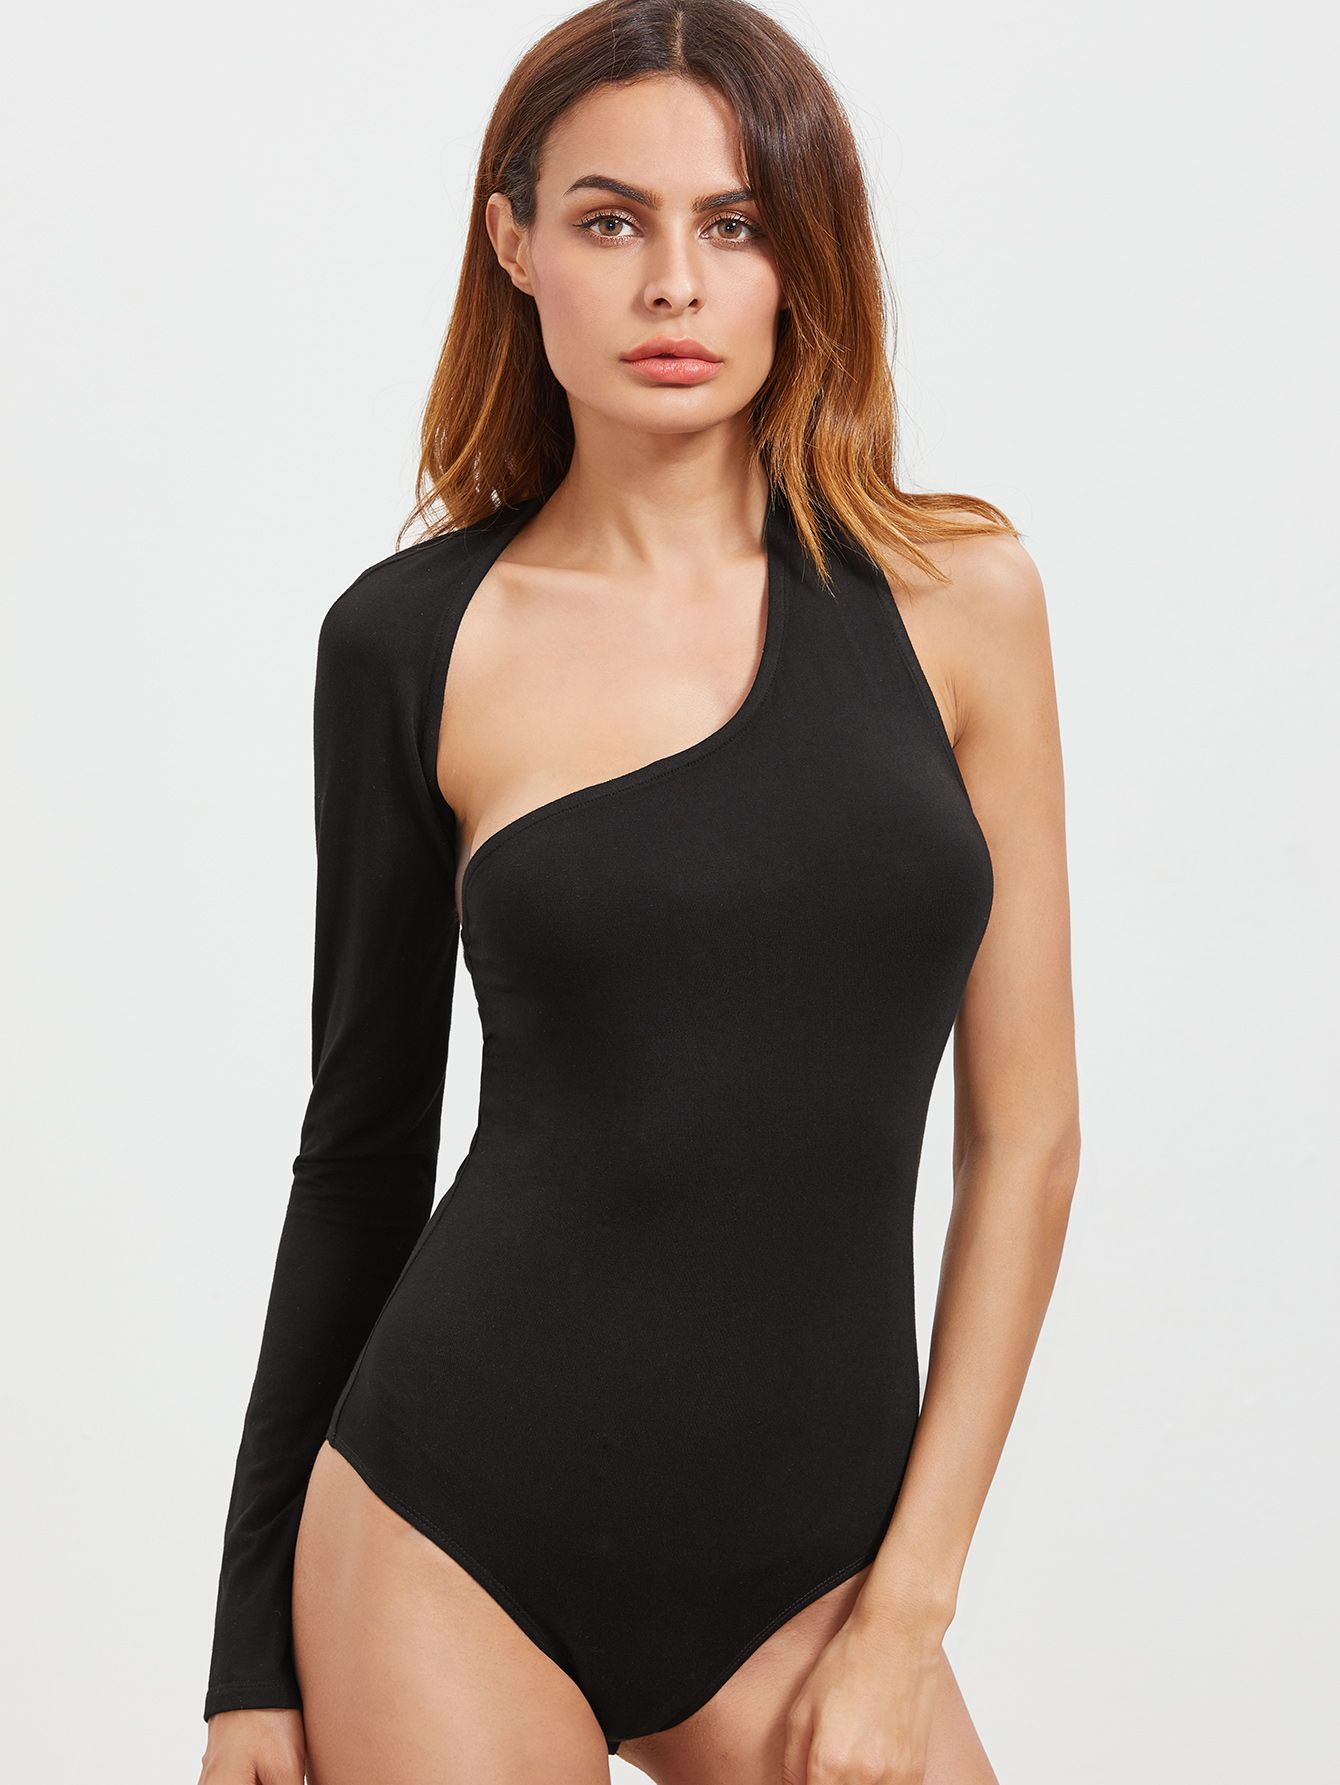 f40f0a10b7 Shop Black Cutout One Shoulder Wrap Around Sleeve Bodysuit online. SheIn  offers Black Cutout One Shoulder Wrap Around Sleeve Bodysuit & more to fit  your ...